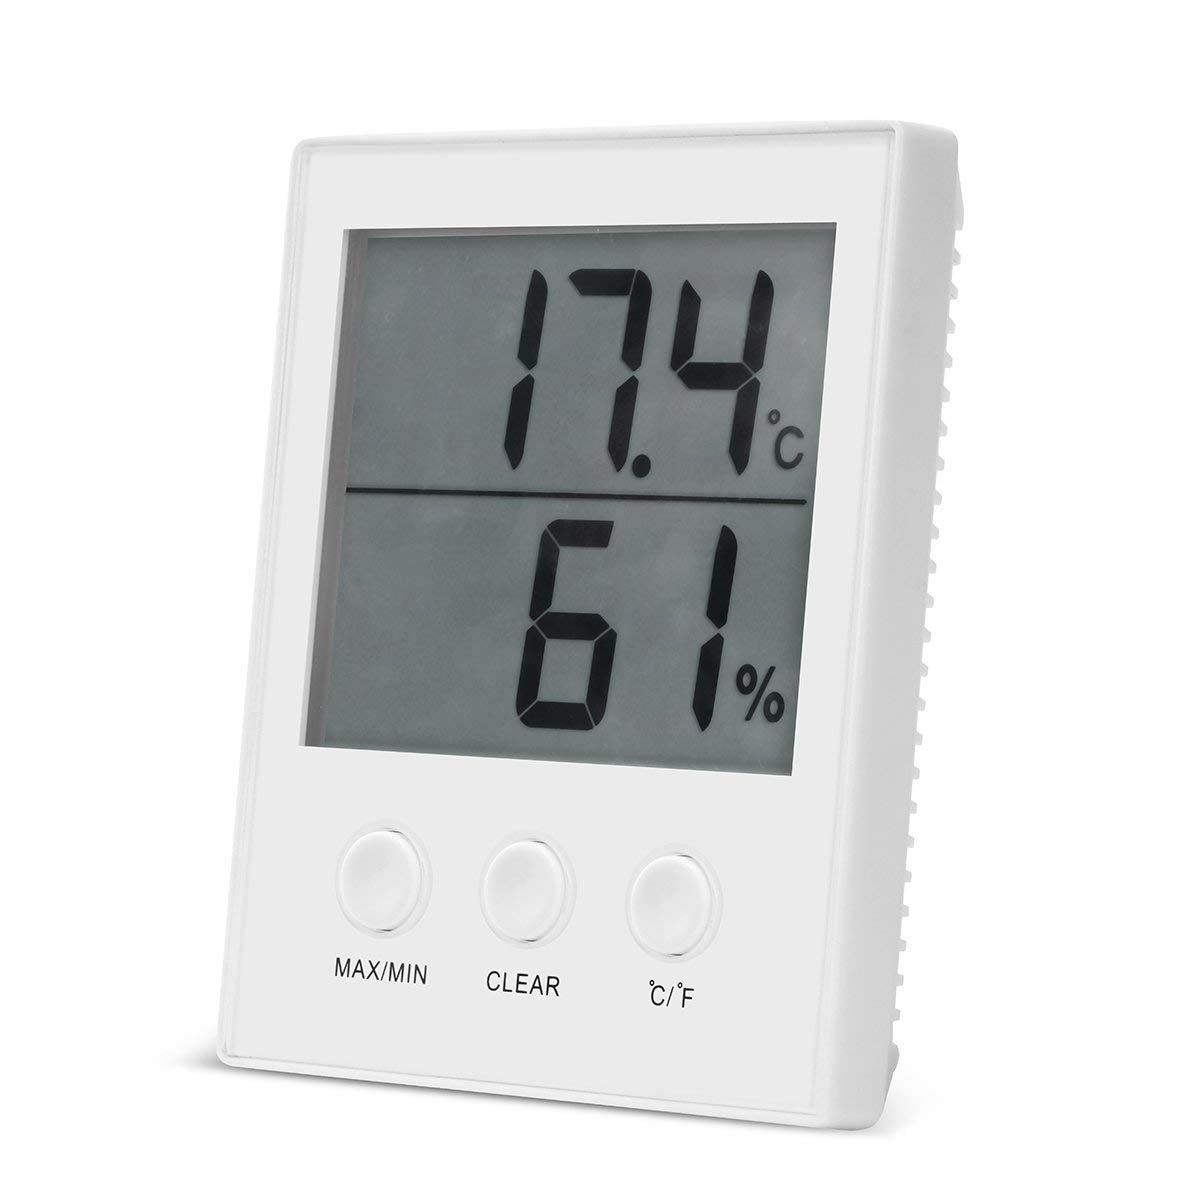 Digital Hygrometer Thermometer, Indoor Wall Hanging Thermometer Humidity Gauge and Thermometer Humidity Monitor